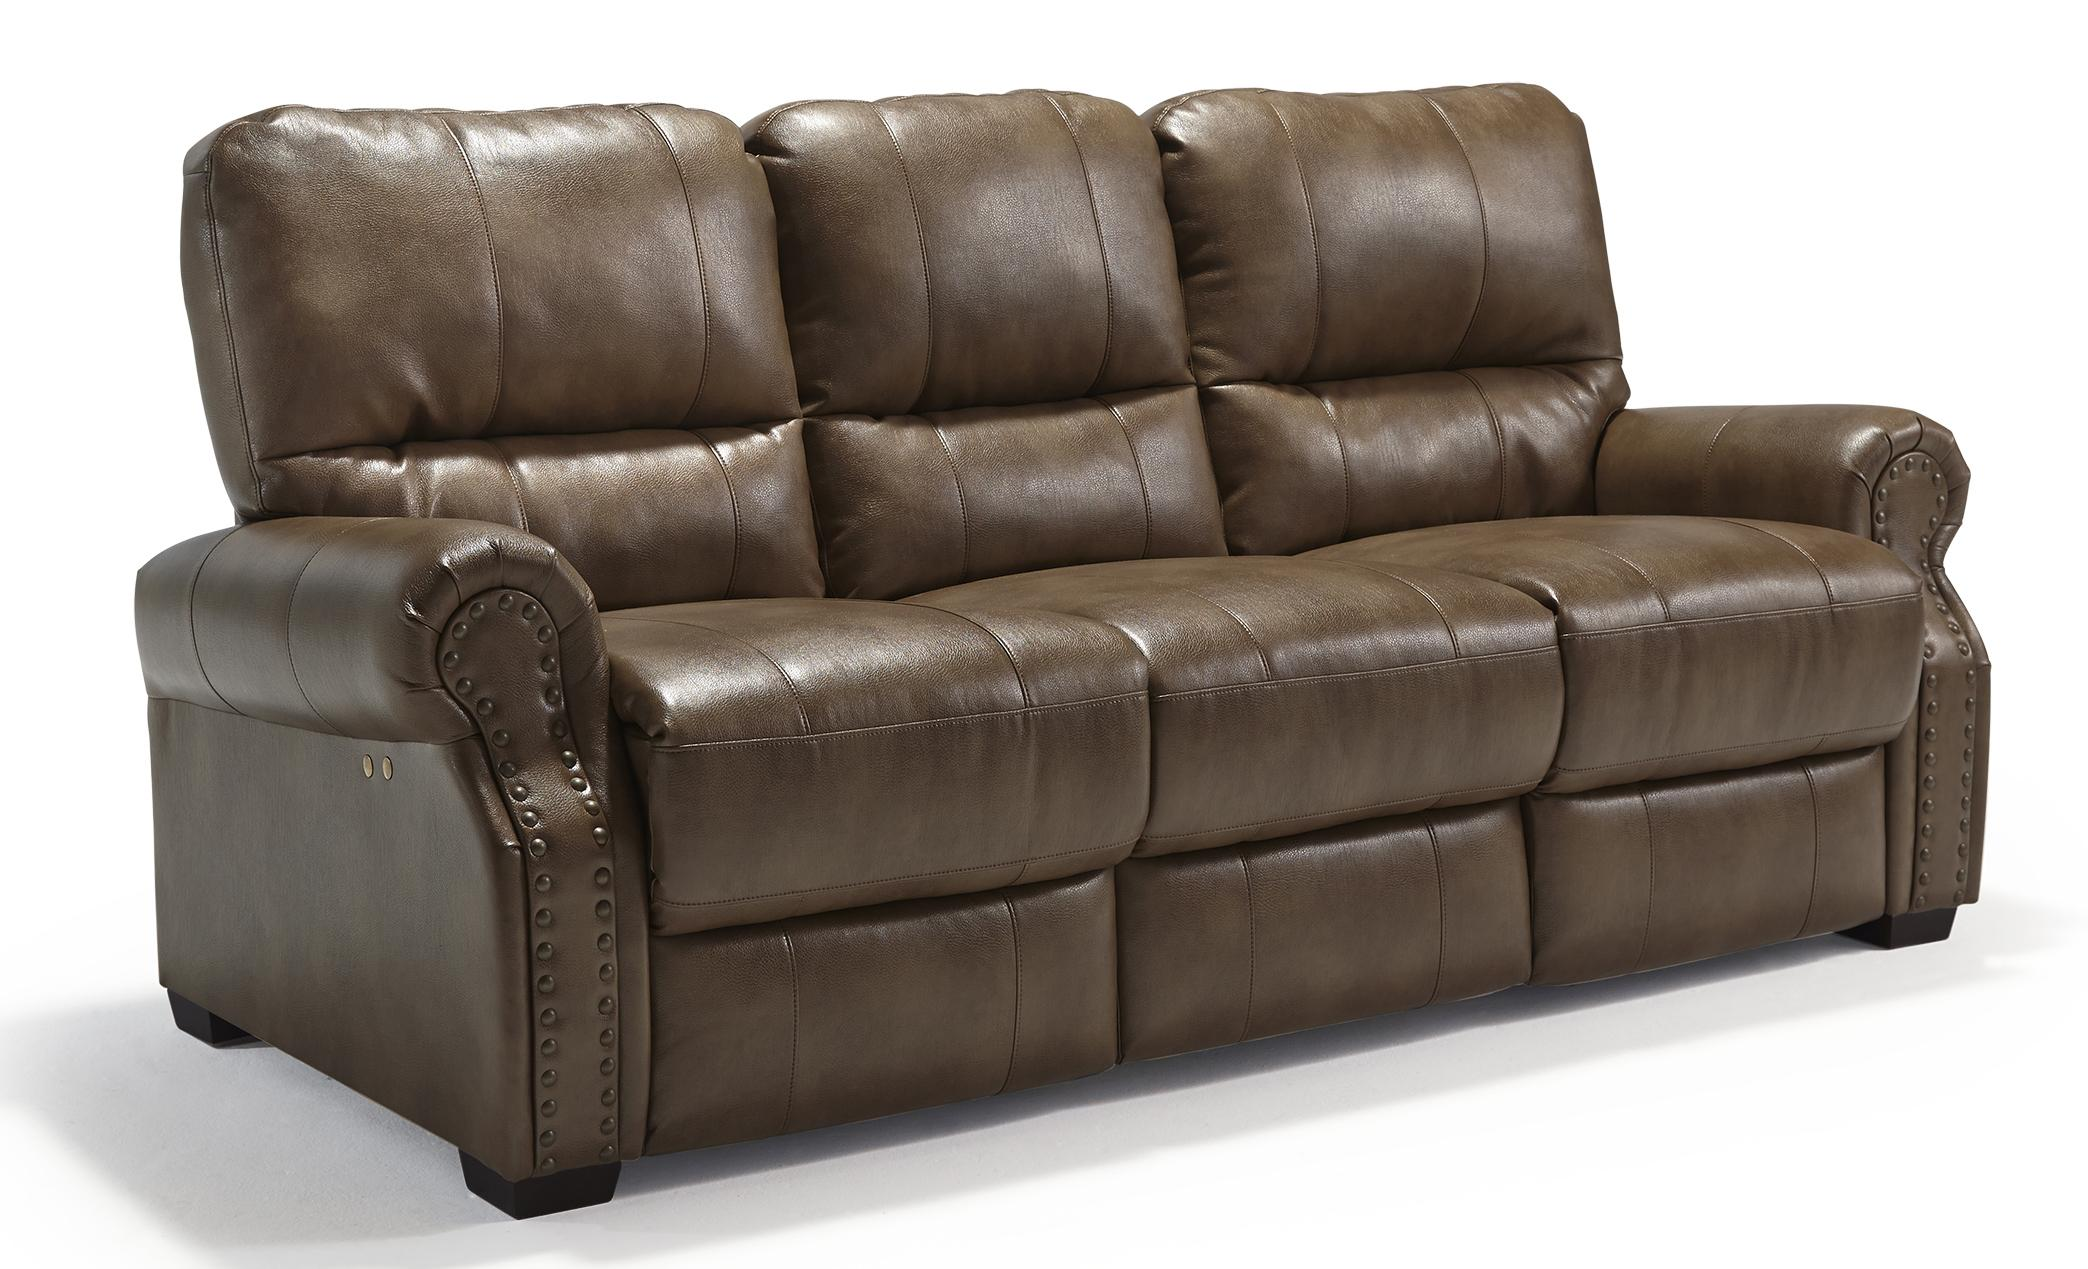 Best Home Furnishings Lander Power Reclining Sofa - Item Number: S915UP2-26766U